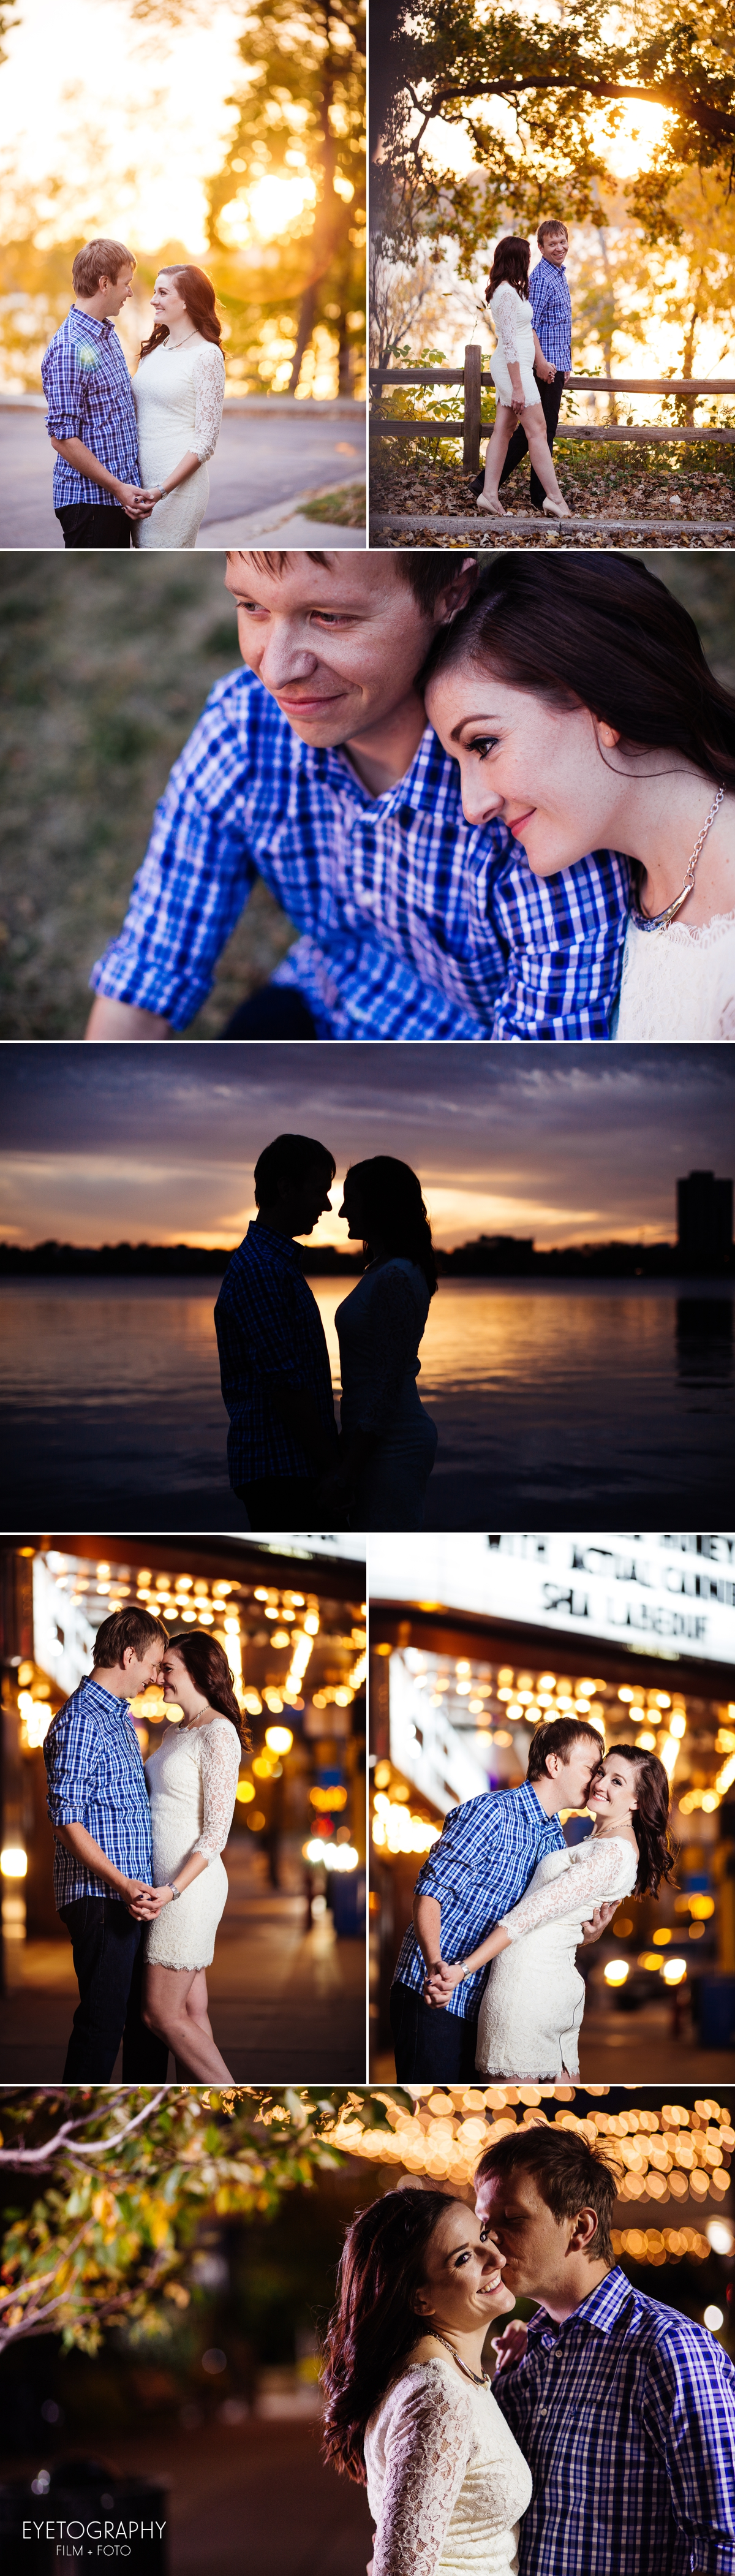 Minneapolis Fall Engagement Photography | Jaimie + Dan | Eyetography FIlm + Foto 6